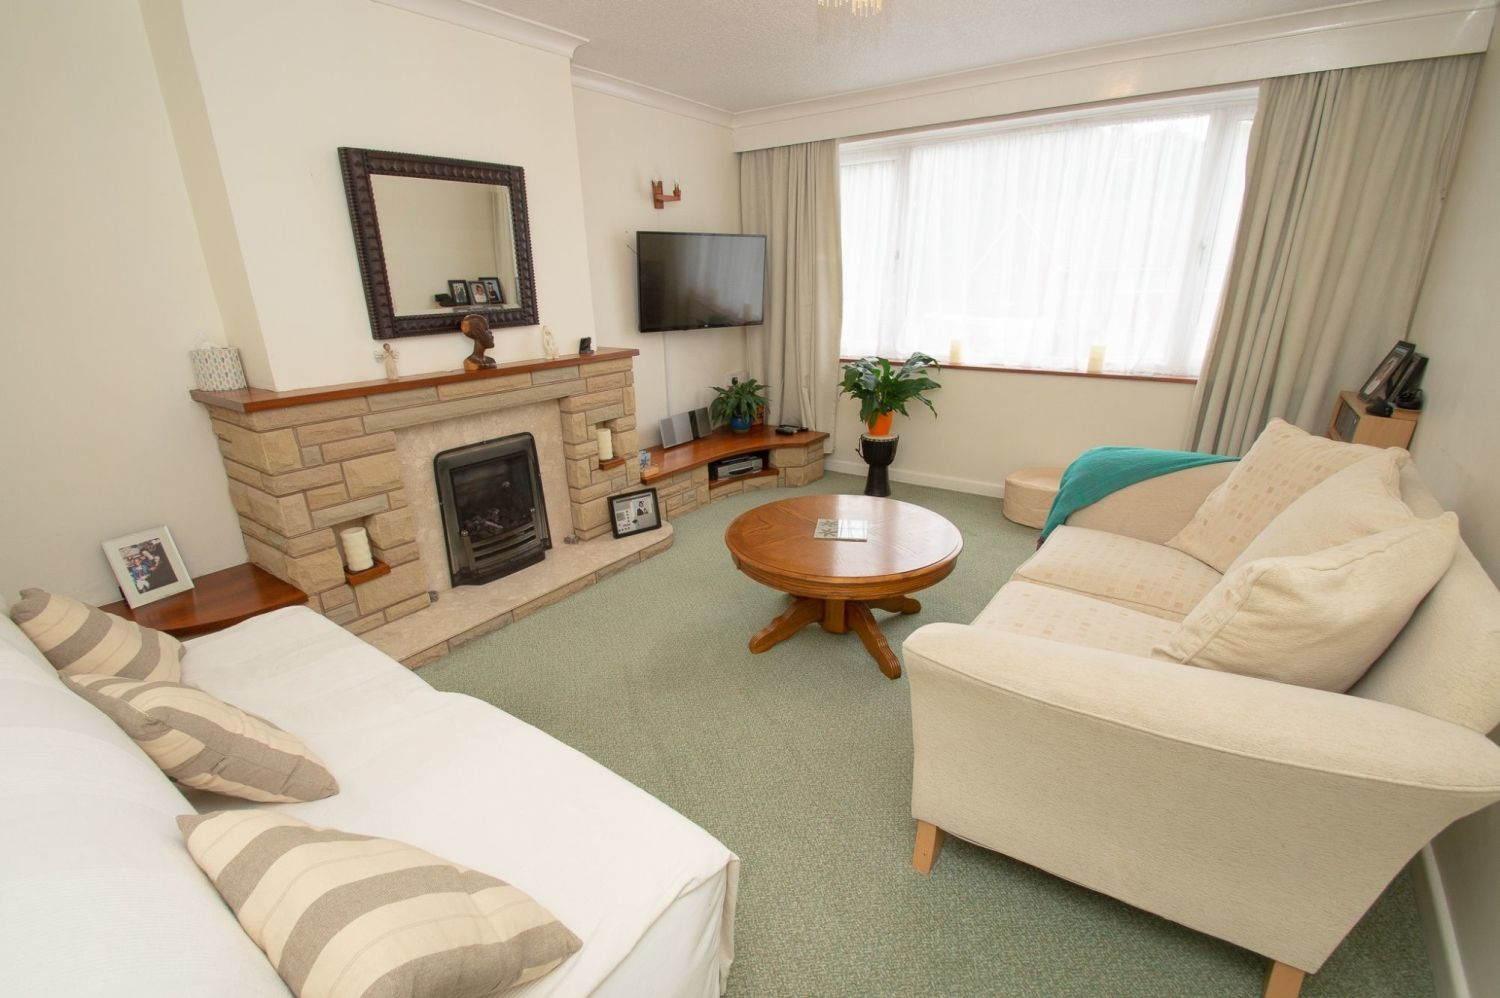 3 bed semi-detached for sale in Vicarage Crescent, Redditch  - Property Image 2